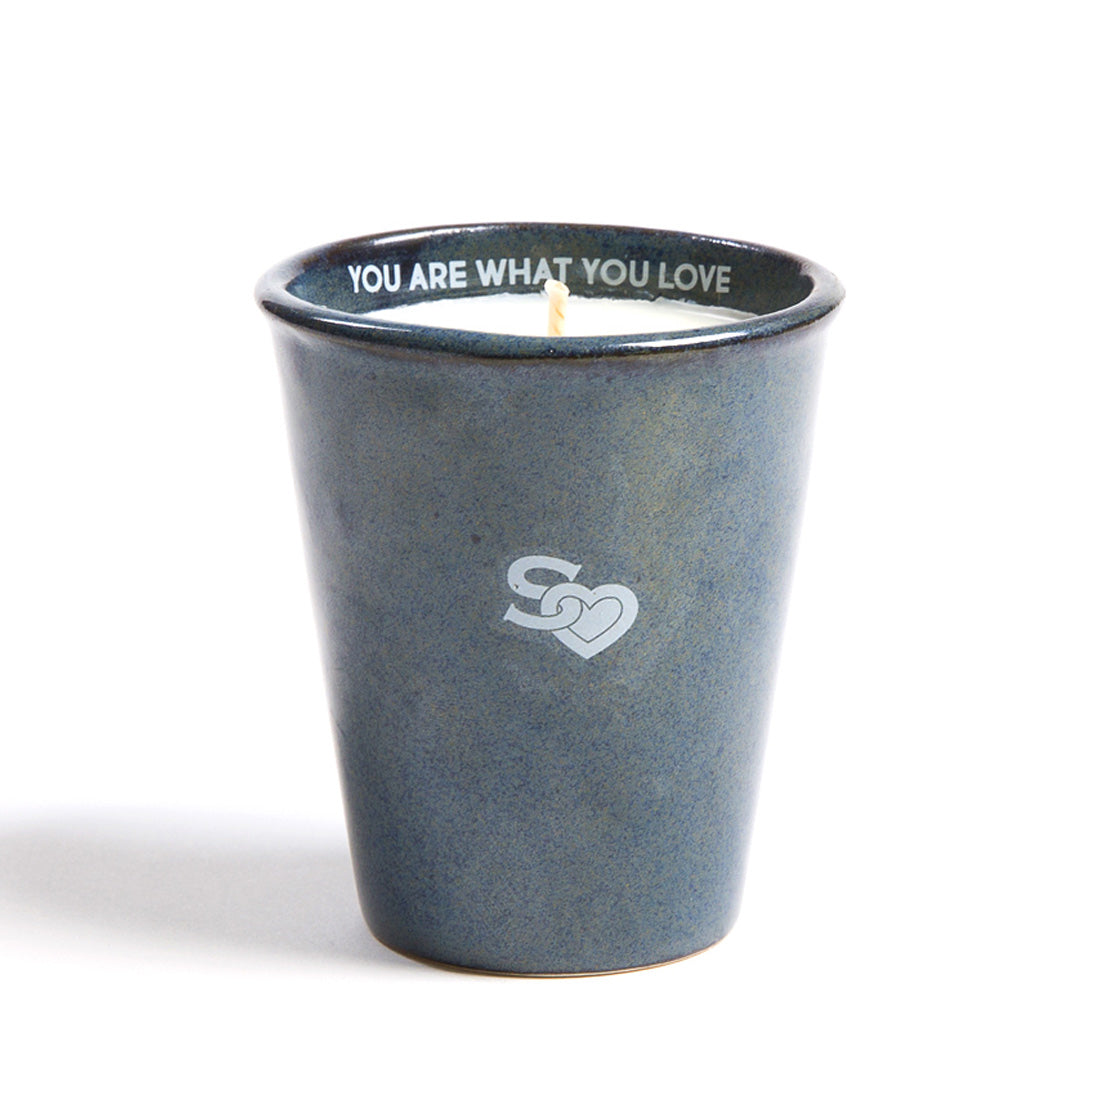 HW Scented Indigo Candle Cup by Provider Store